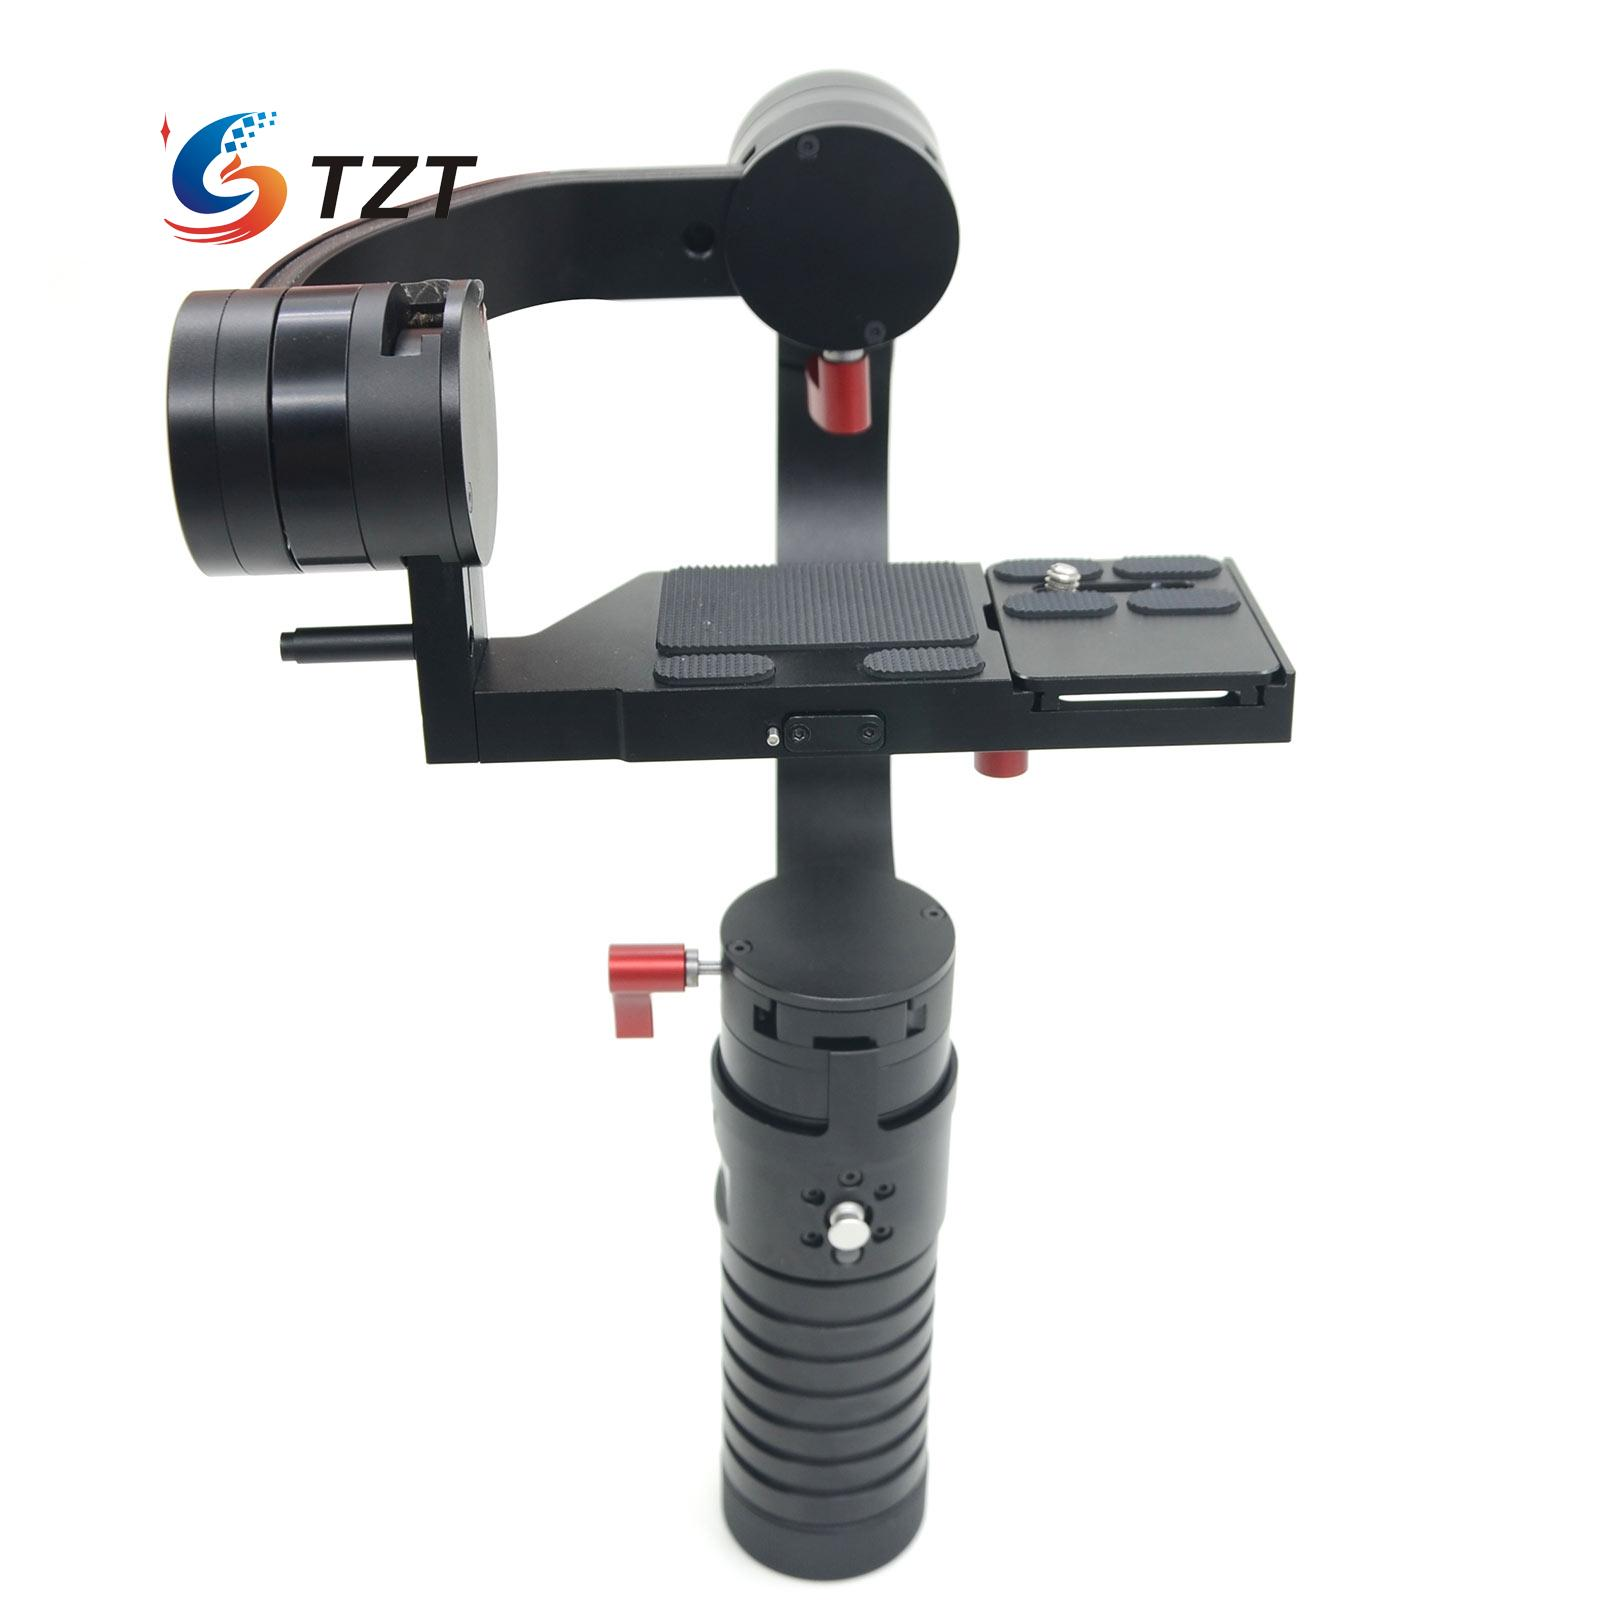 Handheld 3 Axis Gimbal Stabilizer 32Bit Gyro Steadicam PTZ PK DS1 for DSLR 5D3 5D2 6D Camera yuneec q500 typhoon quadcopter handheld cgo steadygrip gimbal black